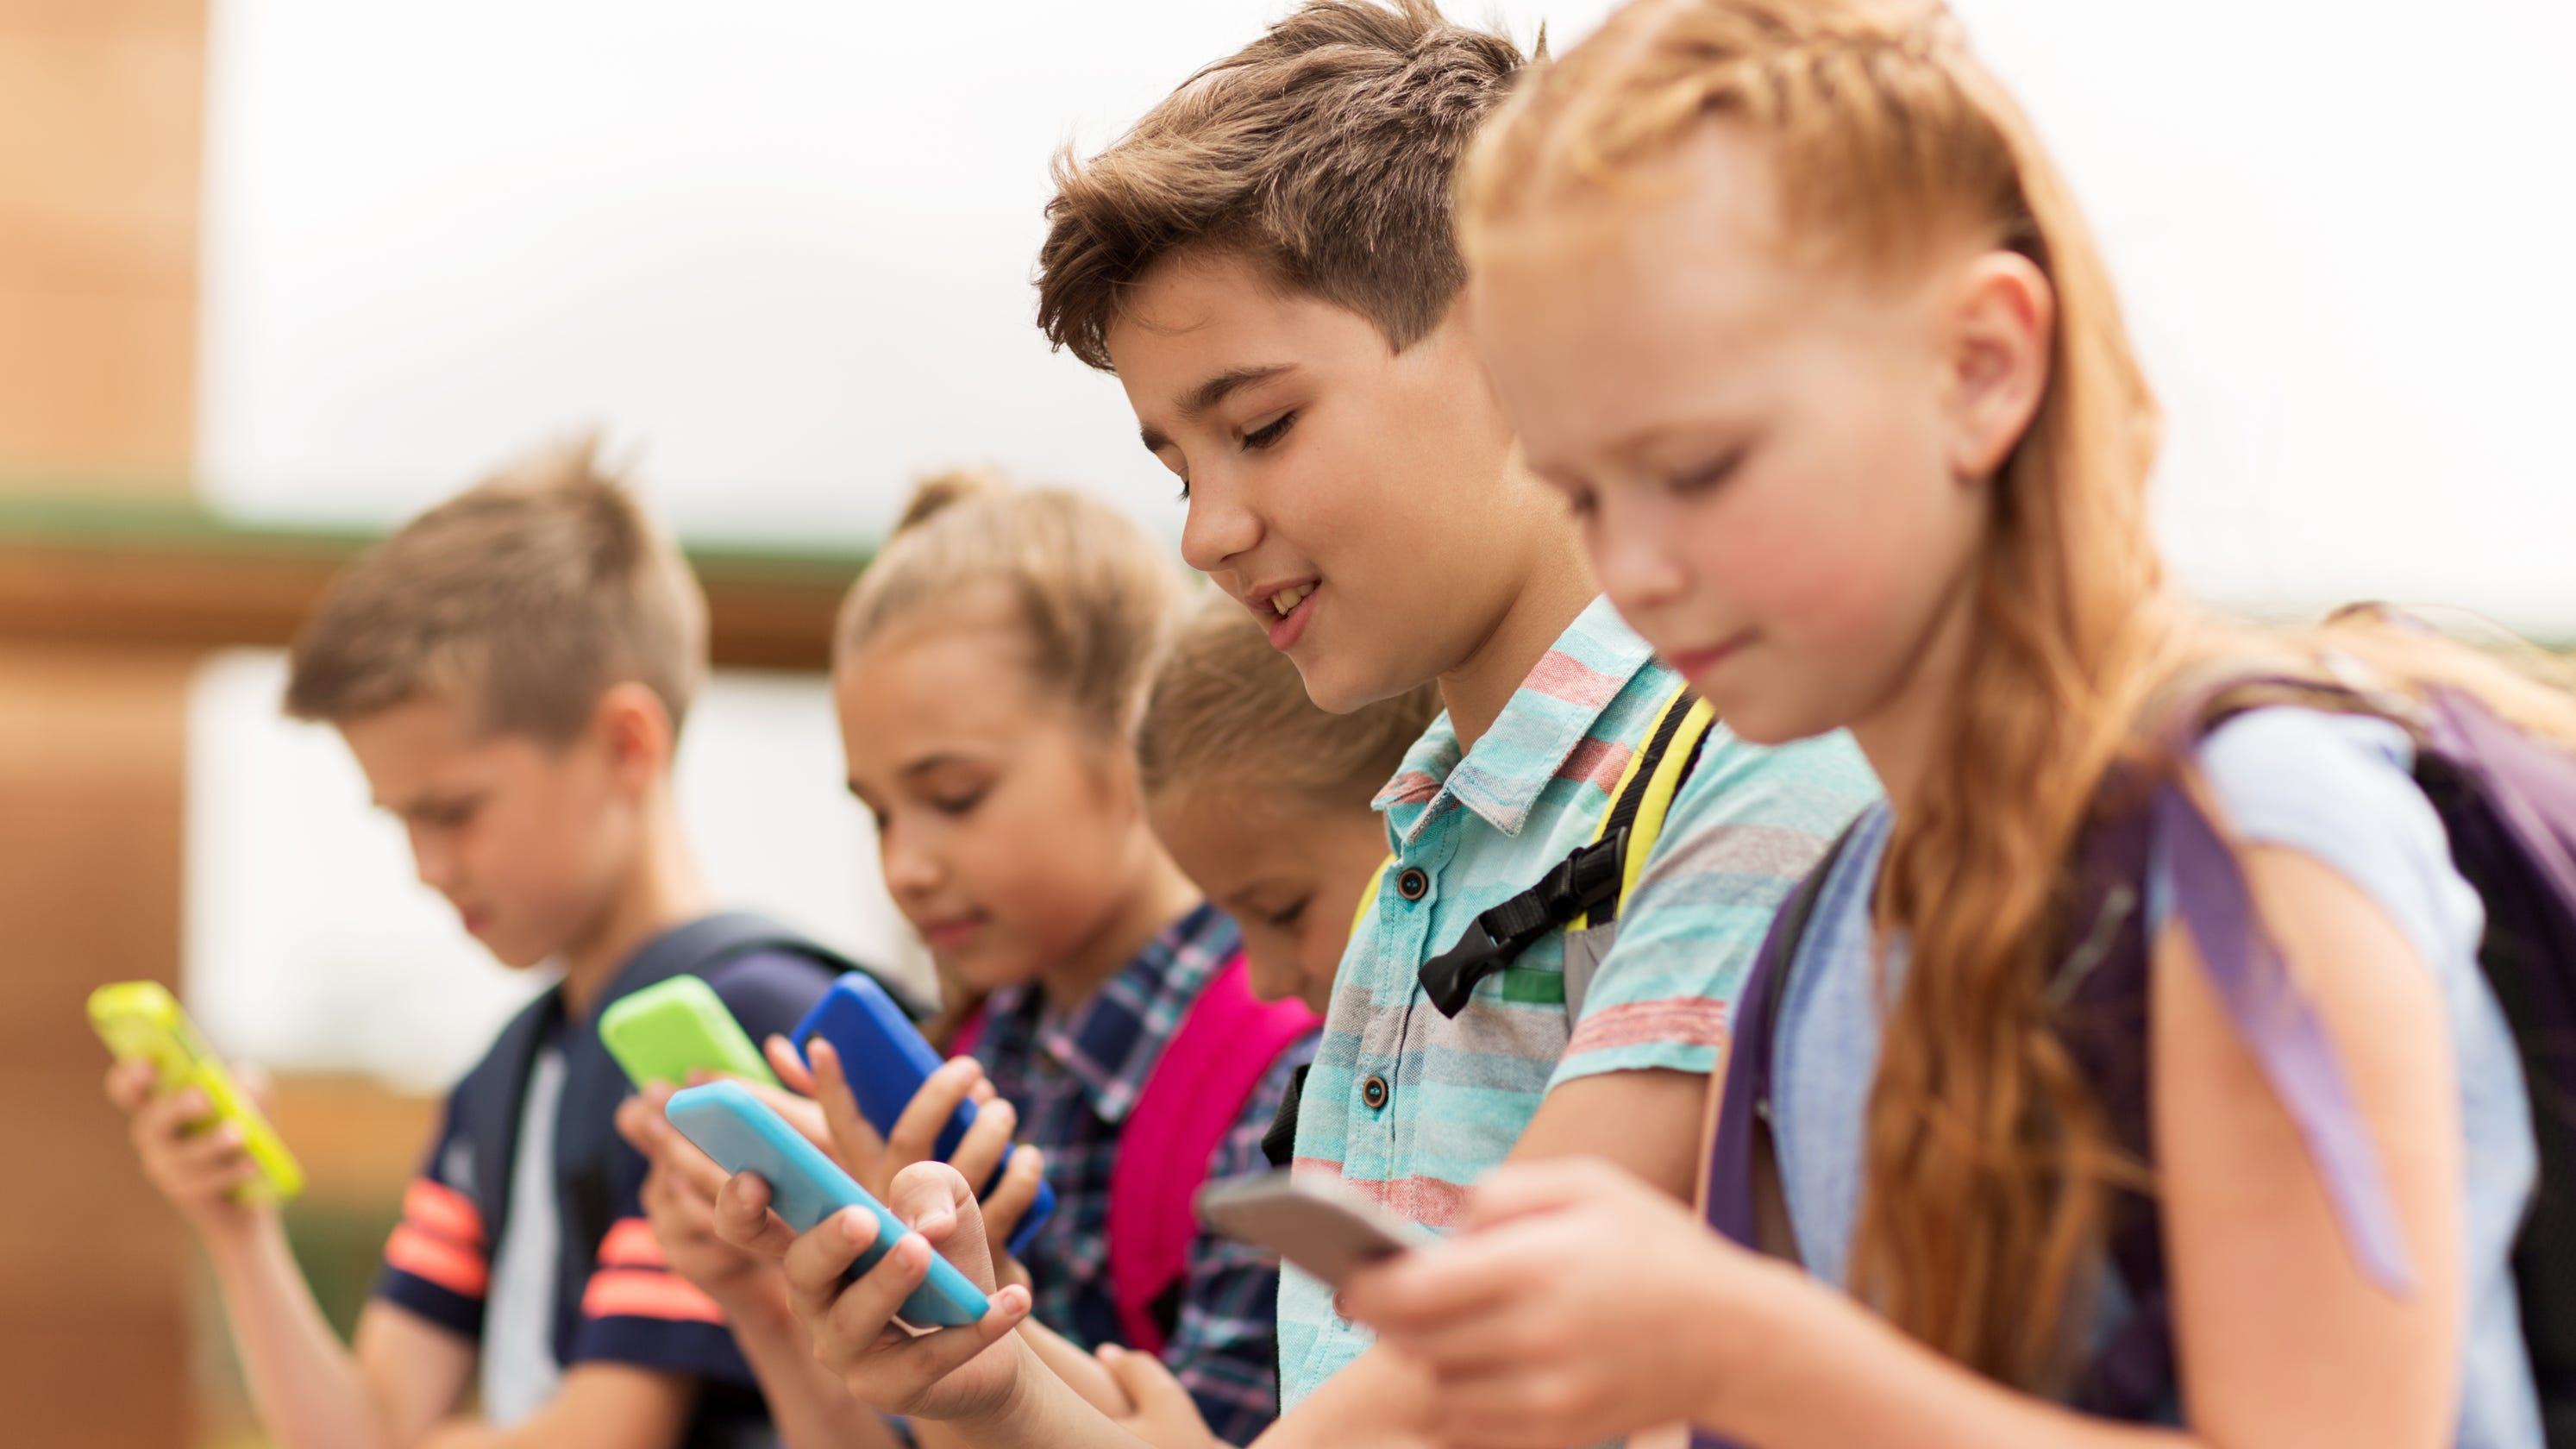 Too much screen time for kids can lead to poor health, American Heart Association says